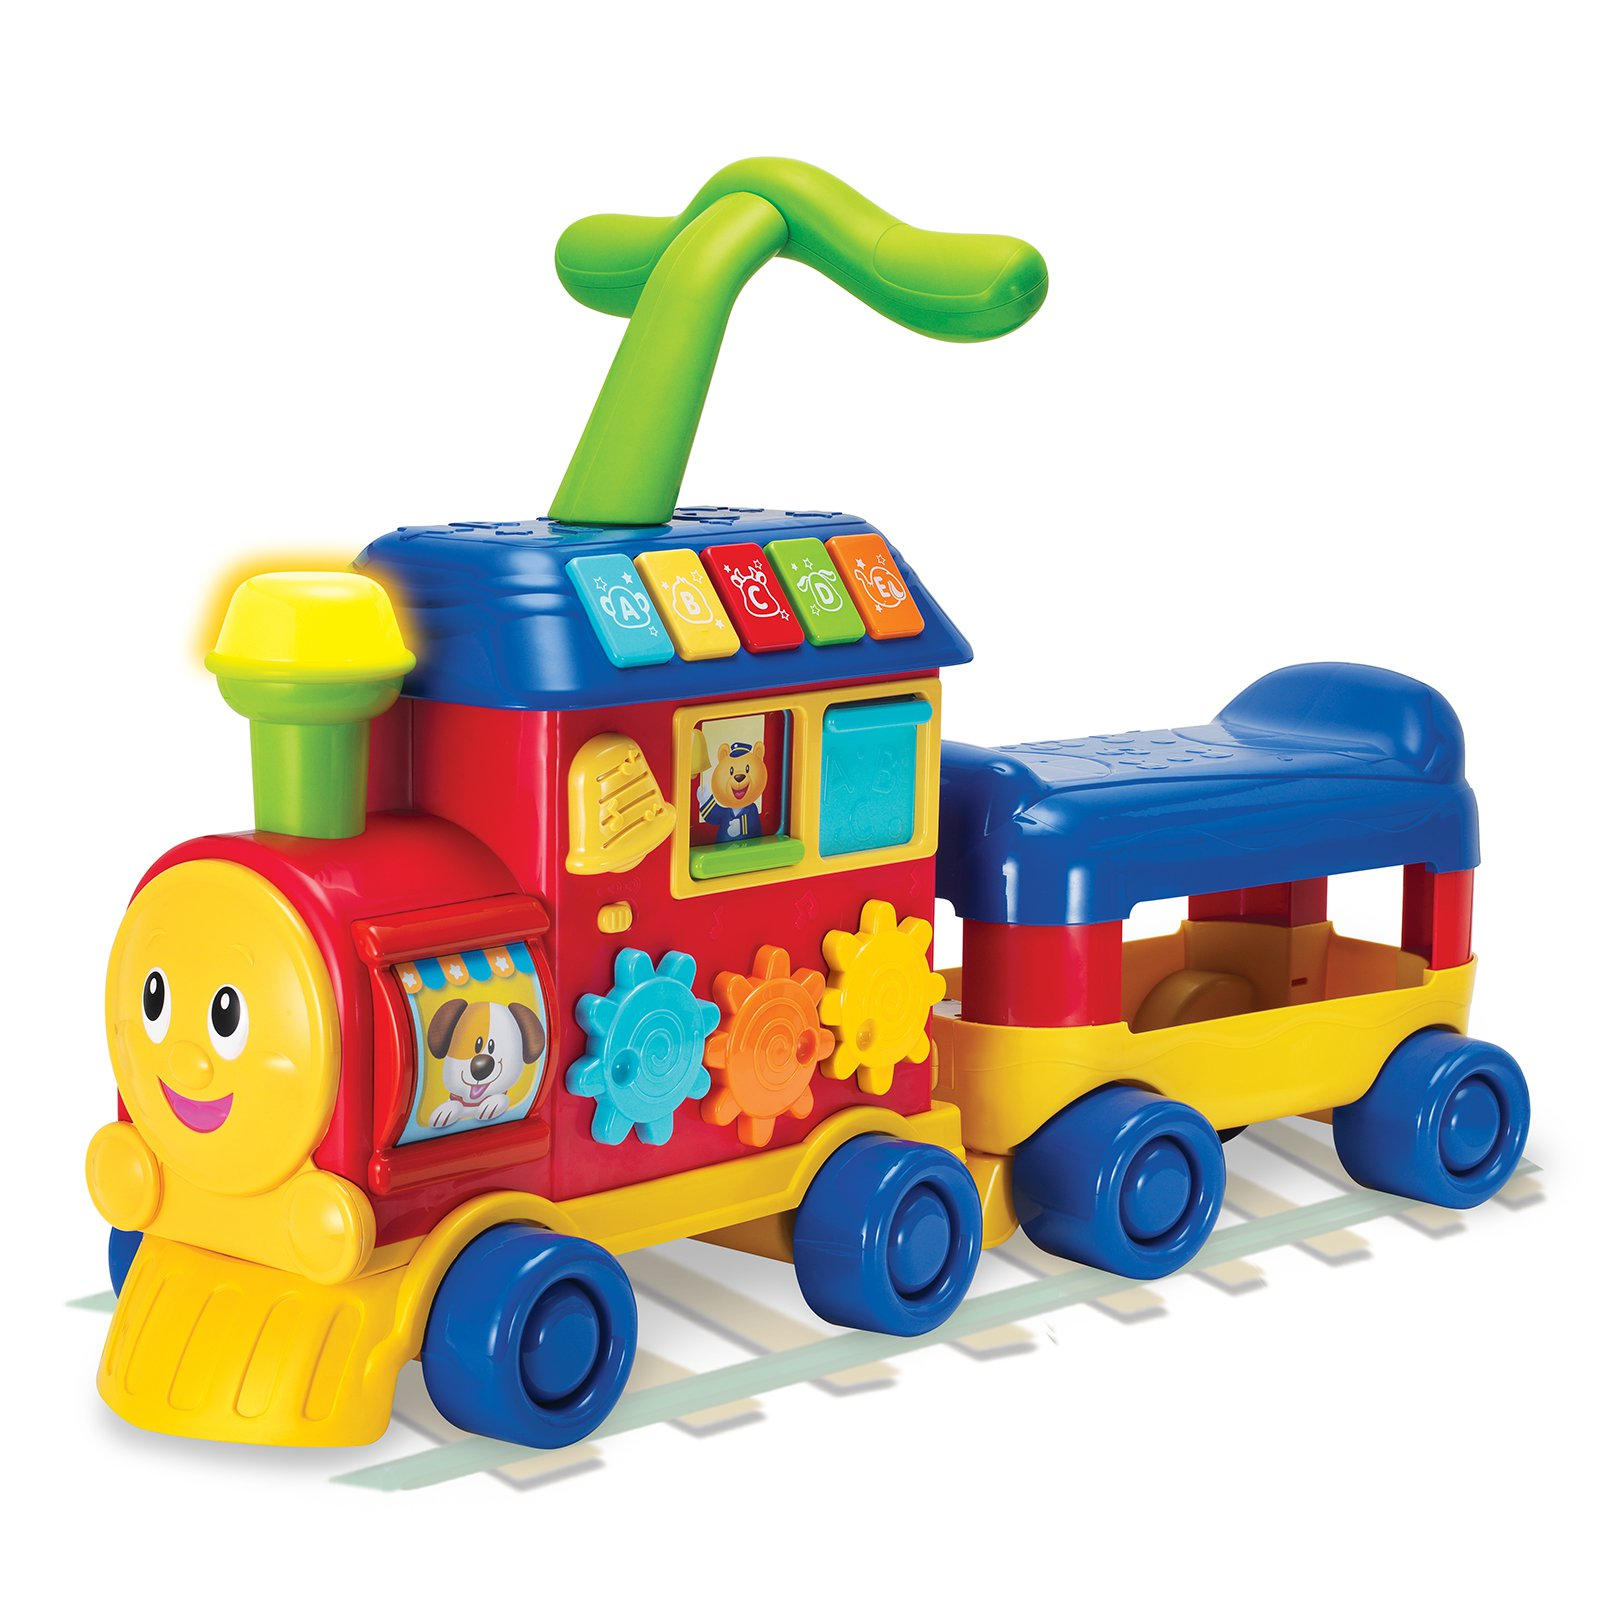 Walker Ride-On Learning Train by WinFun